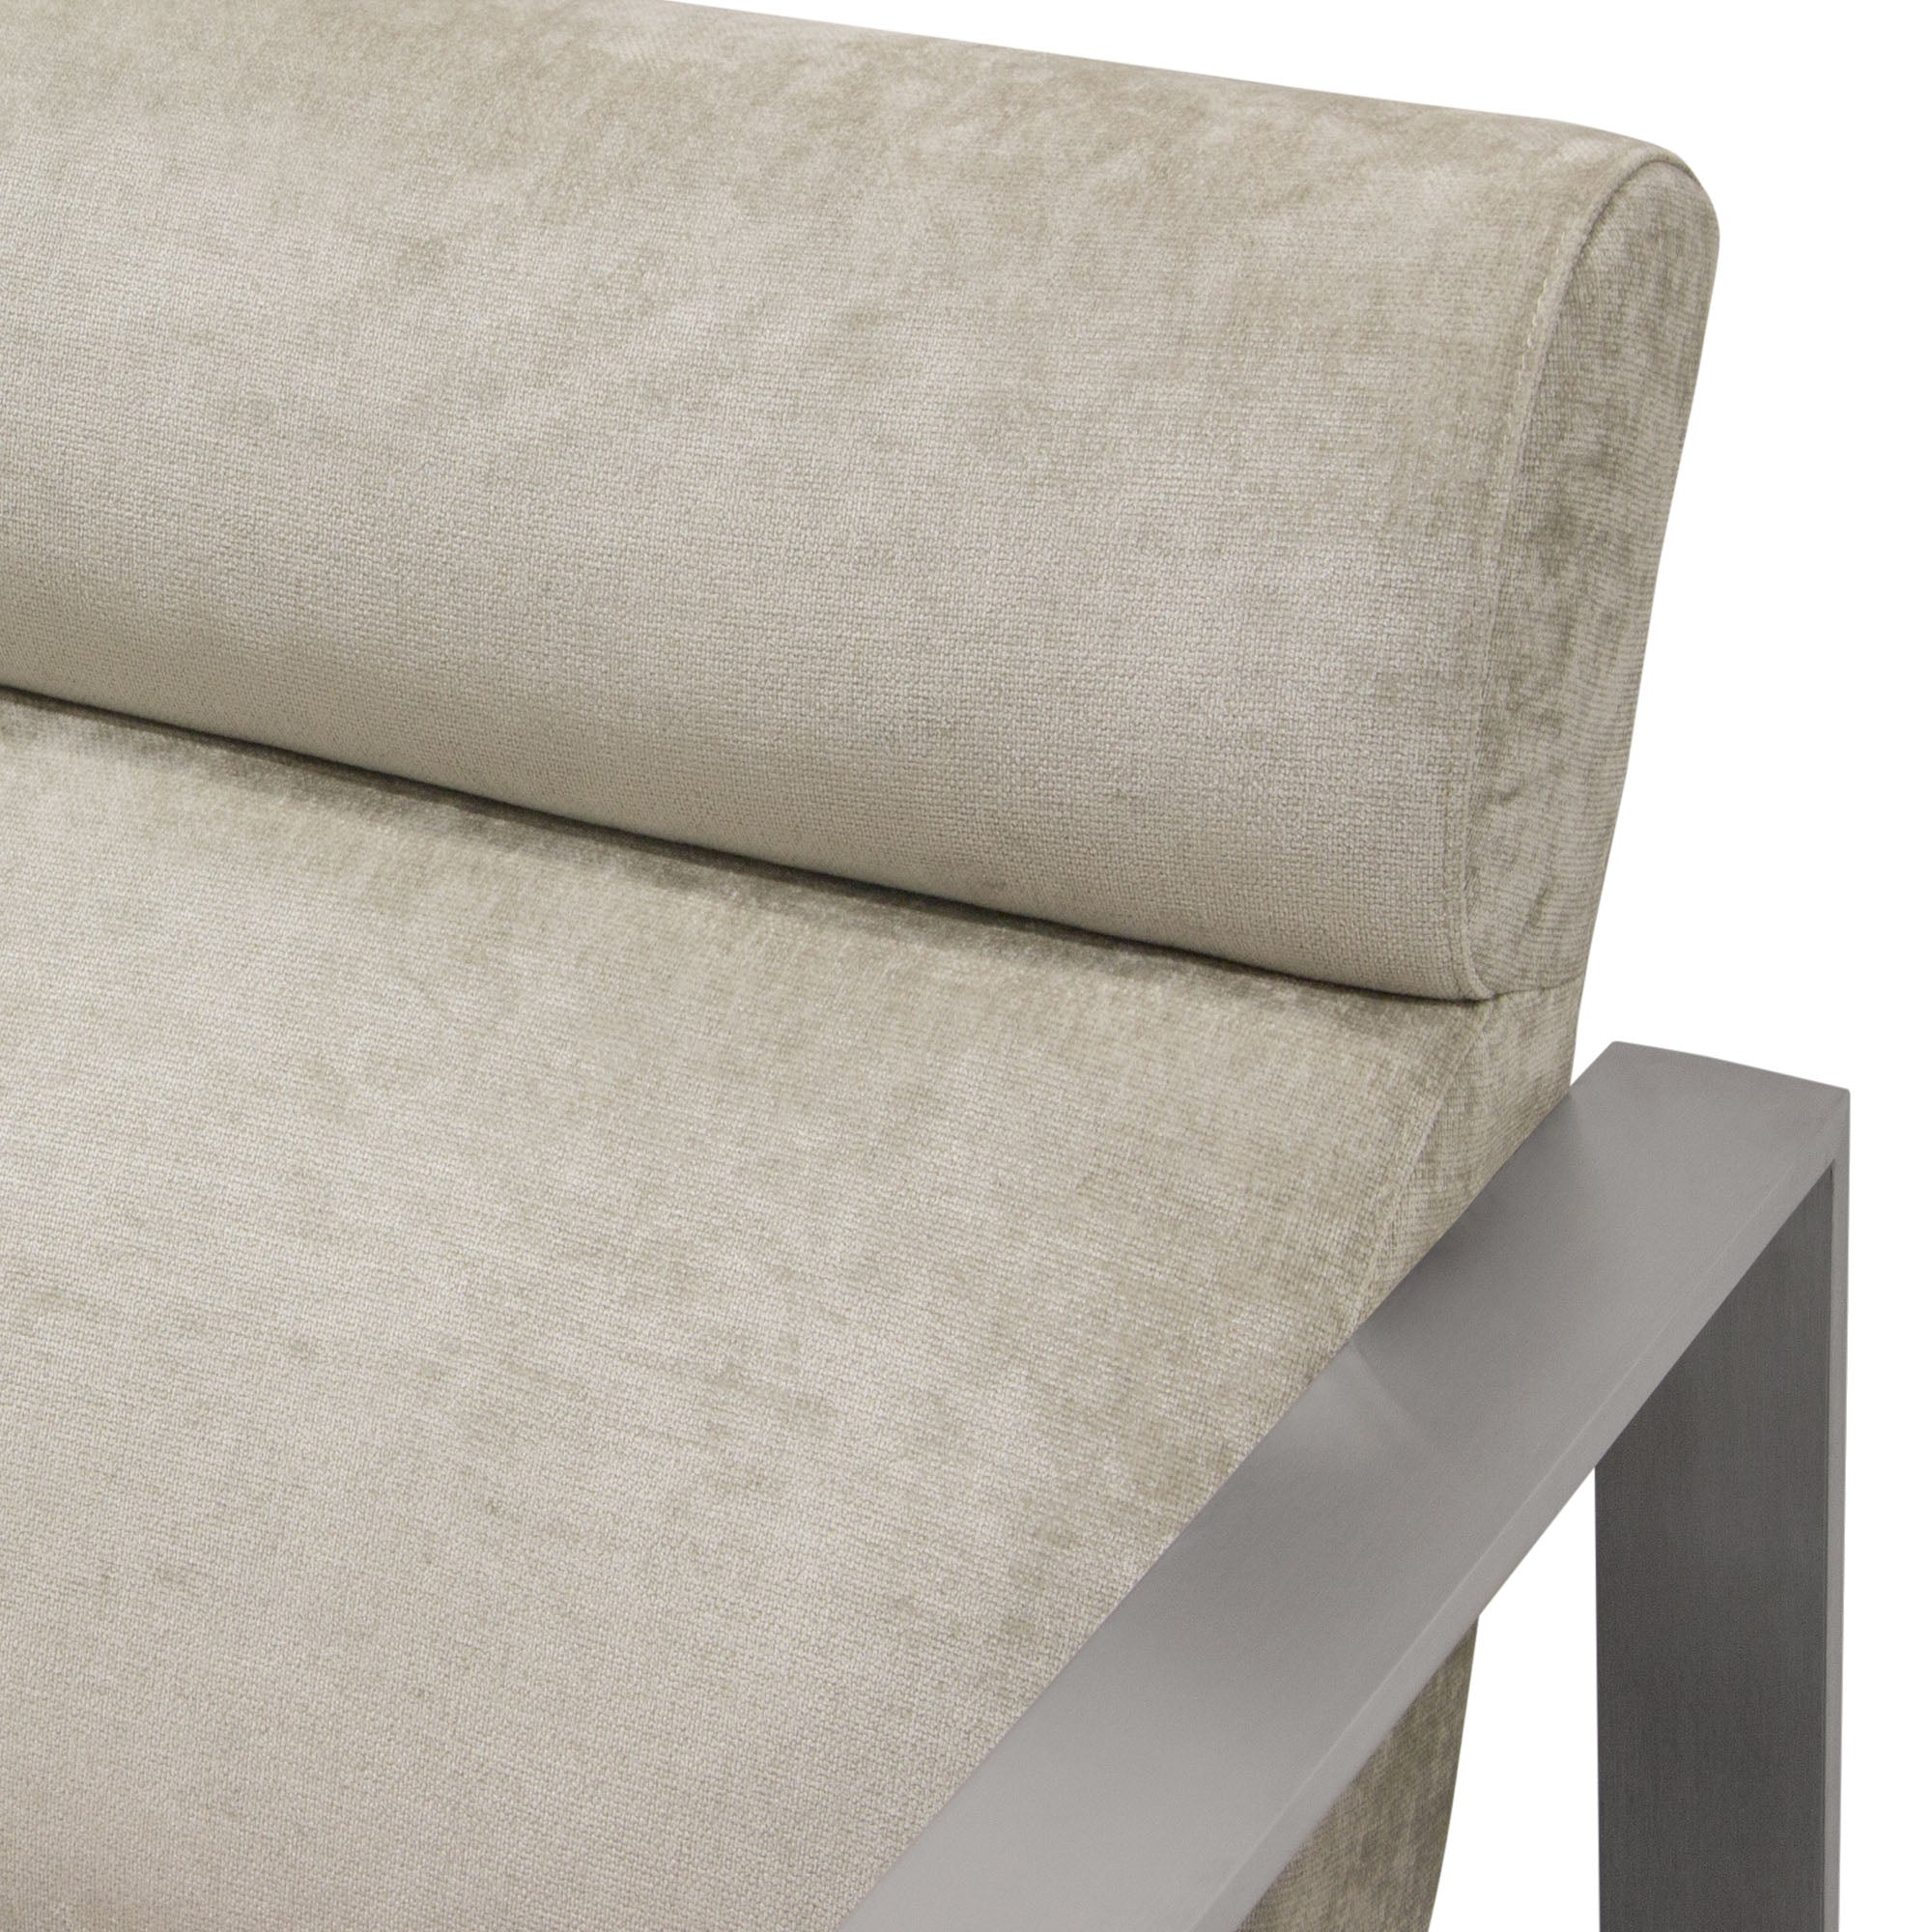 La Brea Accent Chair in Champagne Fabric